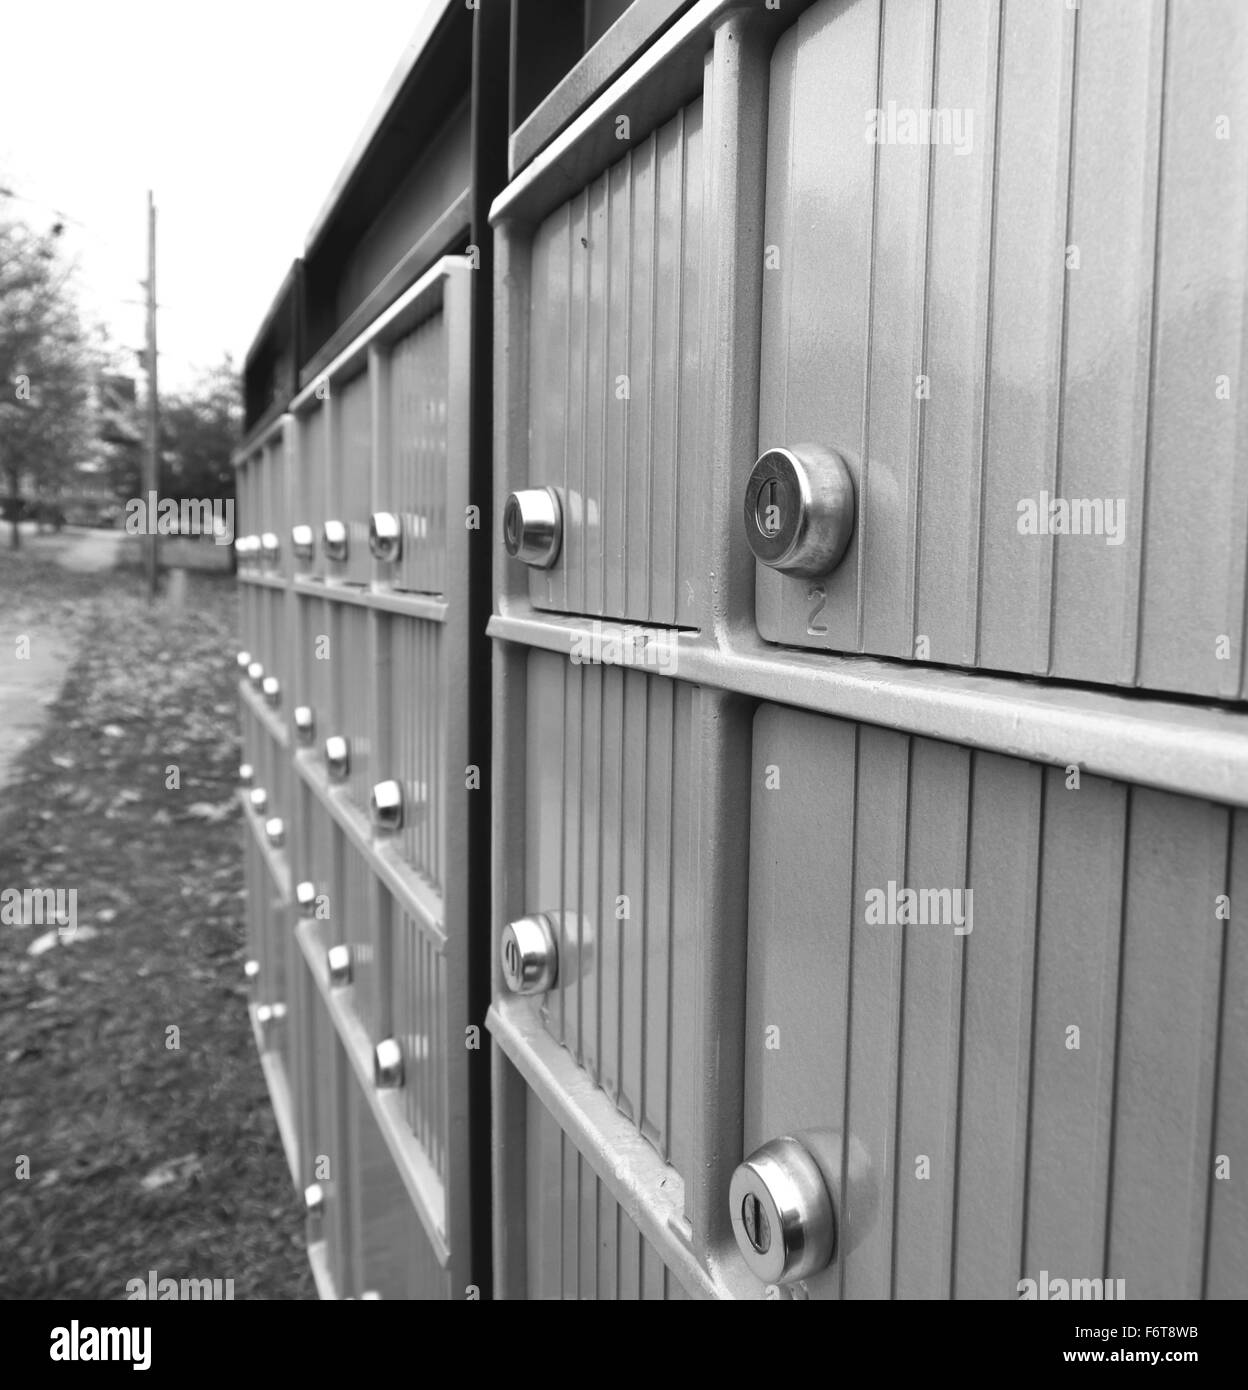 Canada Post mailboxes in a suburban area in Canada Stock Photo